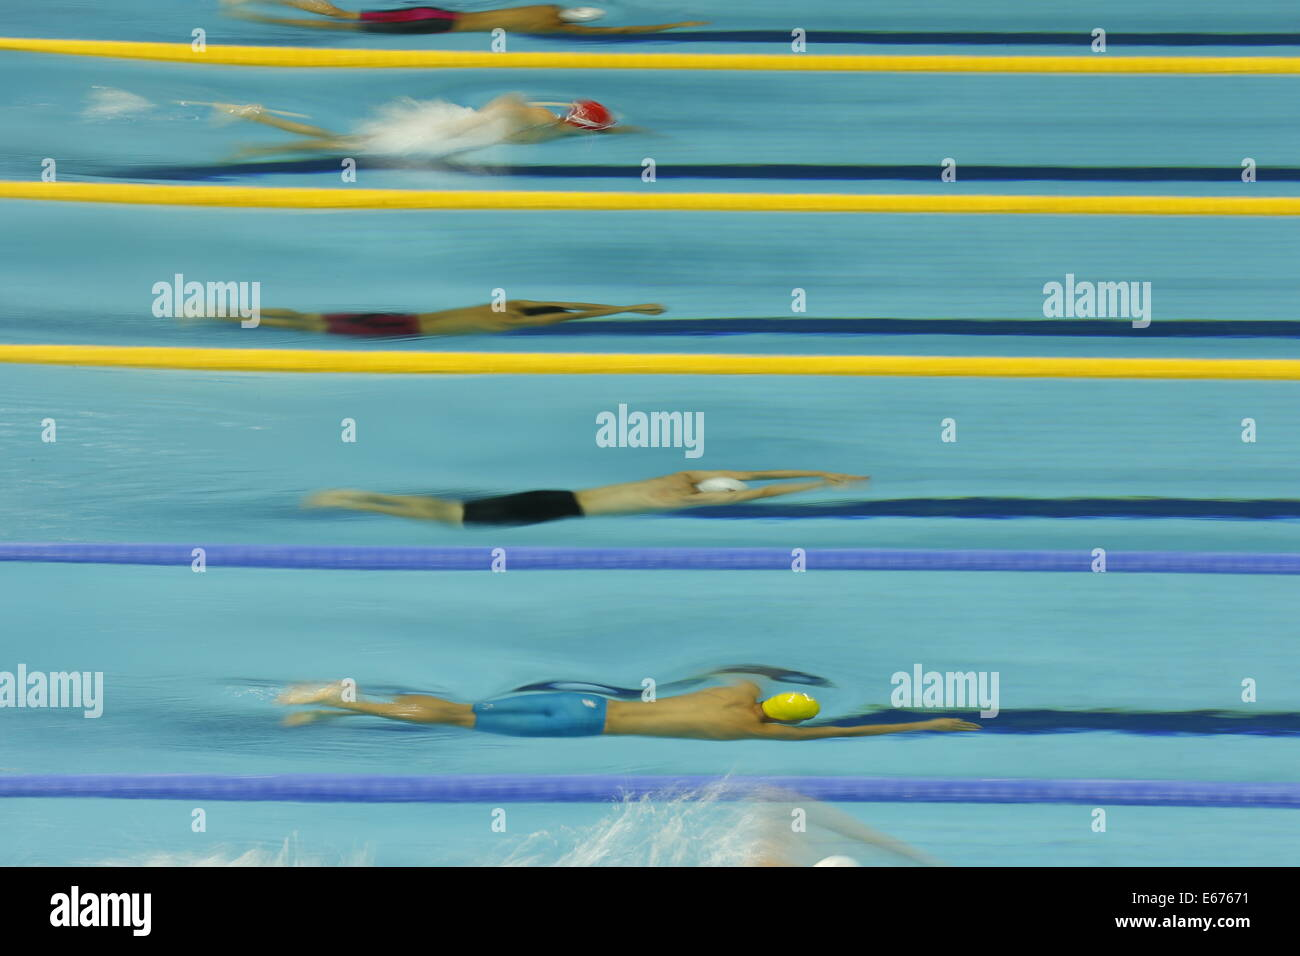 Nanjing, China's Jiangsu Province. 17th Aug, 2014. Athletes compete in the Men's 400m Freestyle of Nanjing - Stock Image